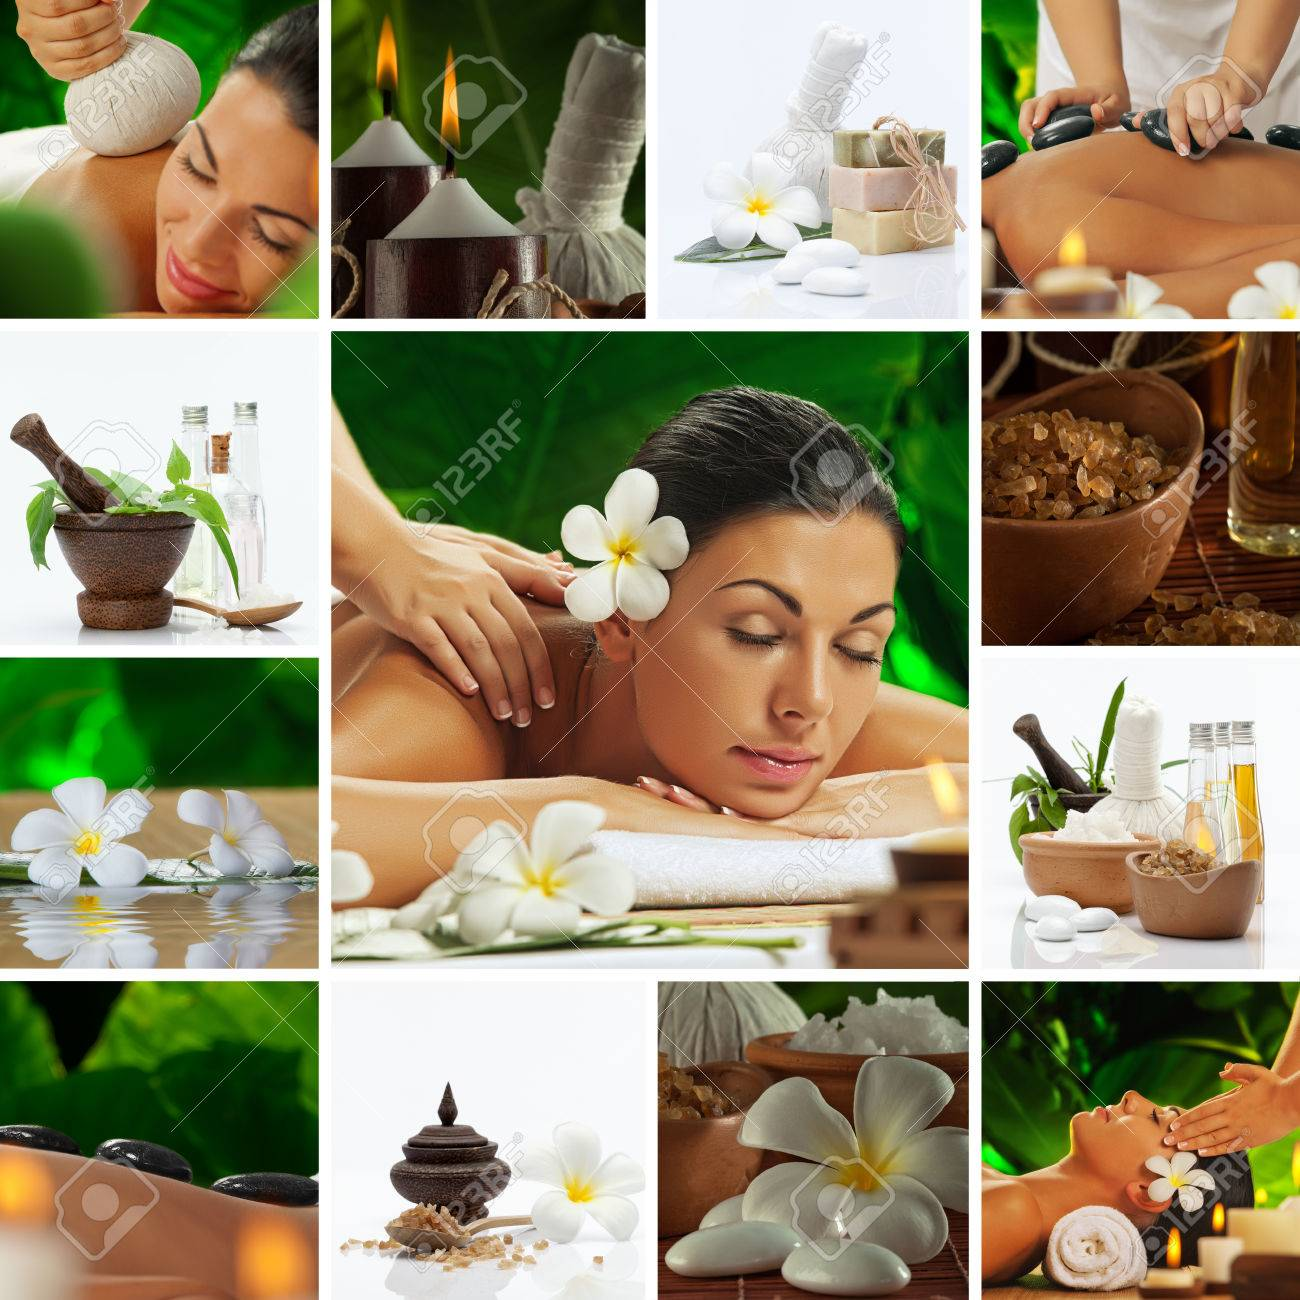 Spa theme  photo collage composed of different images Stock Photo - 22608833